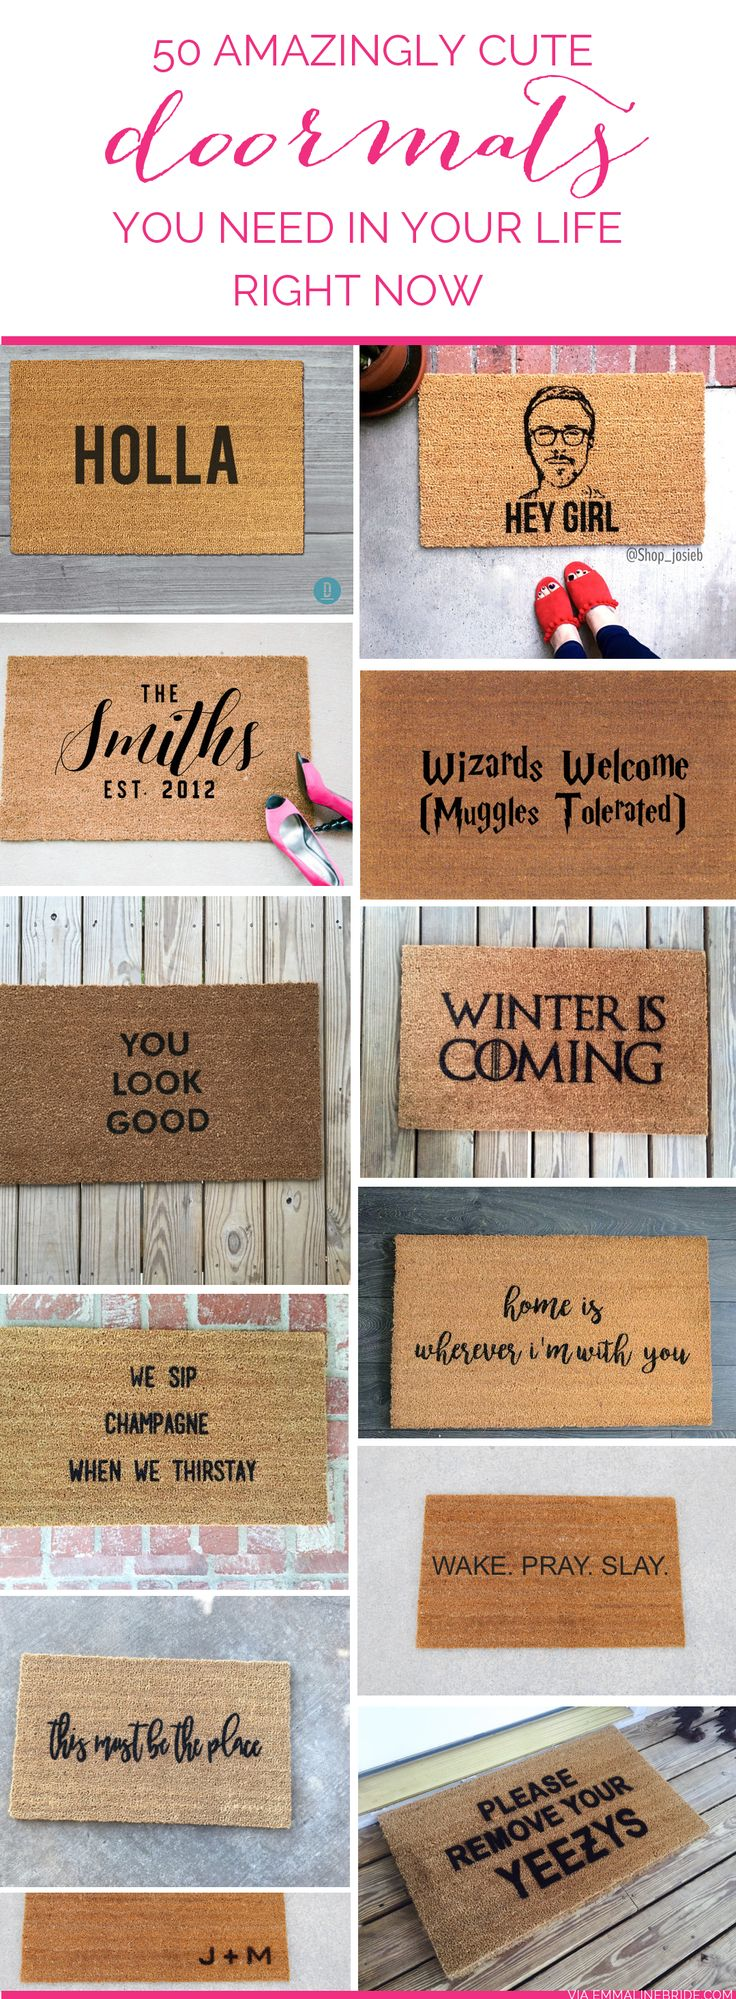 Cute doormats. All from Etsy. #shopsmall for your home! <3 | http://emmalinebride.com/gifts/cute-doormats-etsy/